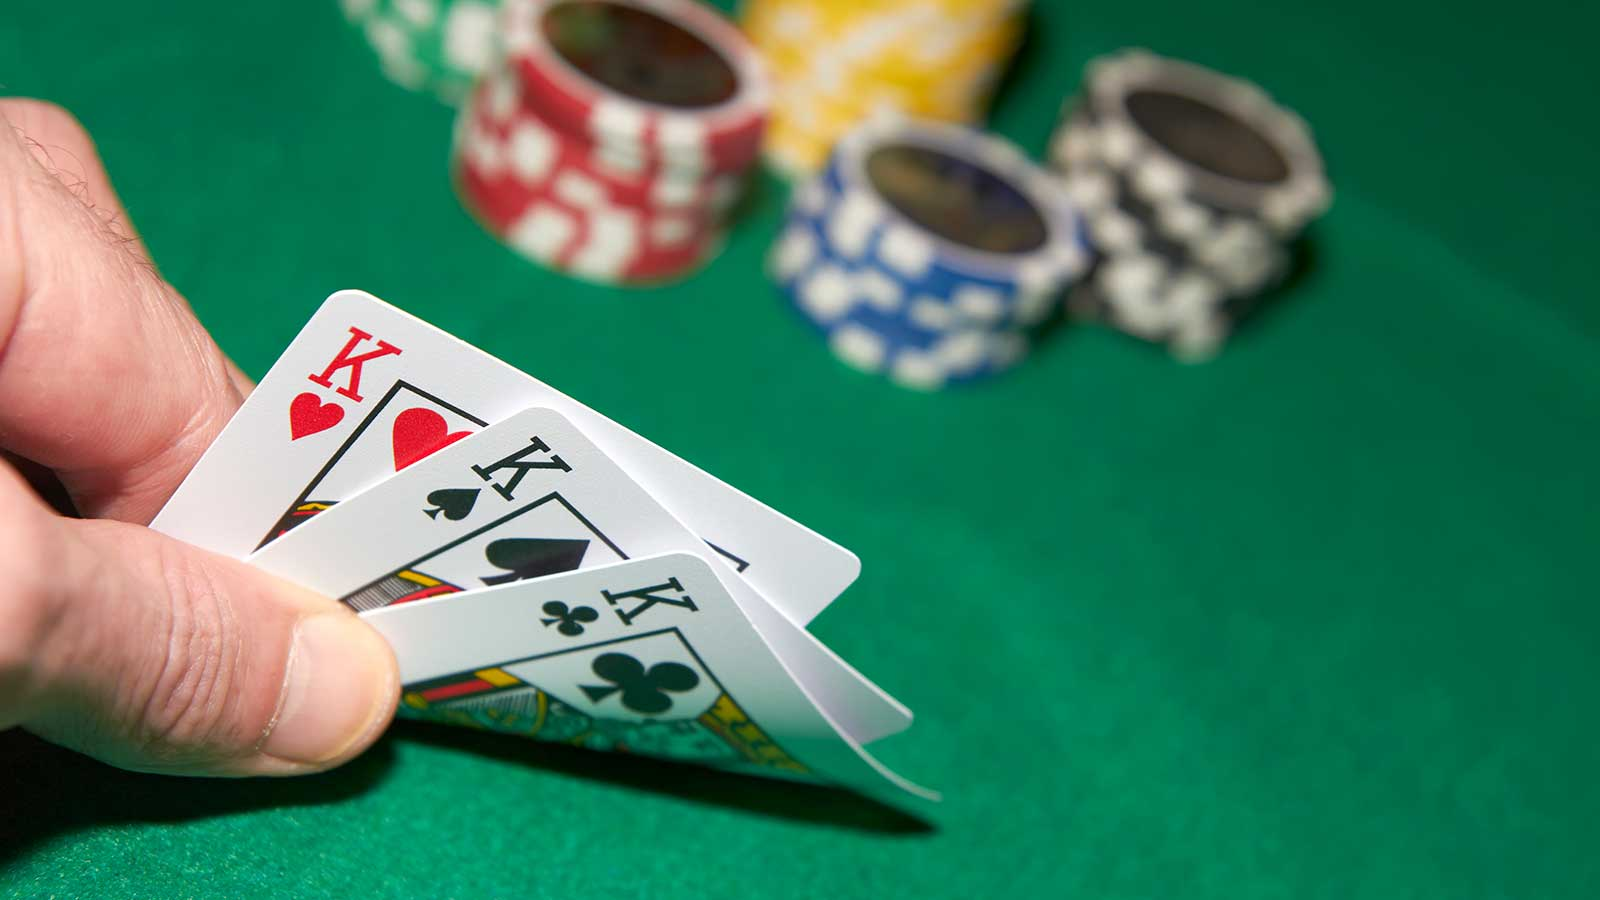 Where Do Experts Engage in Poker Online?